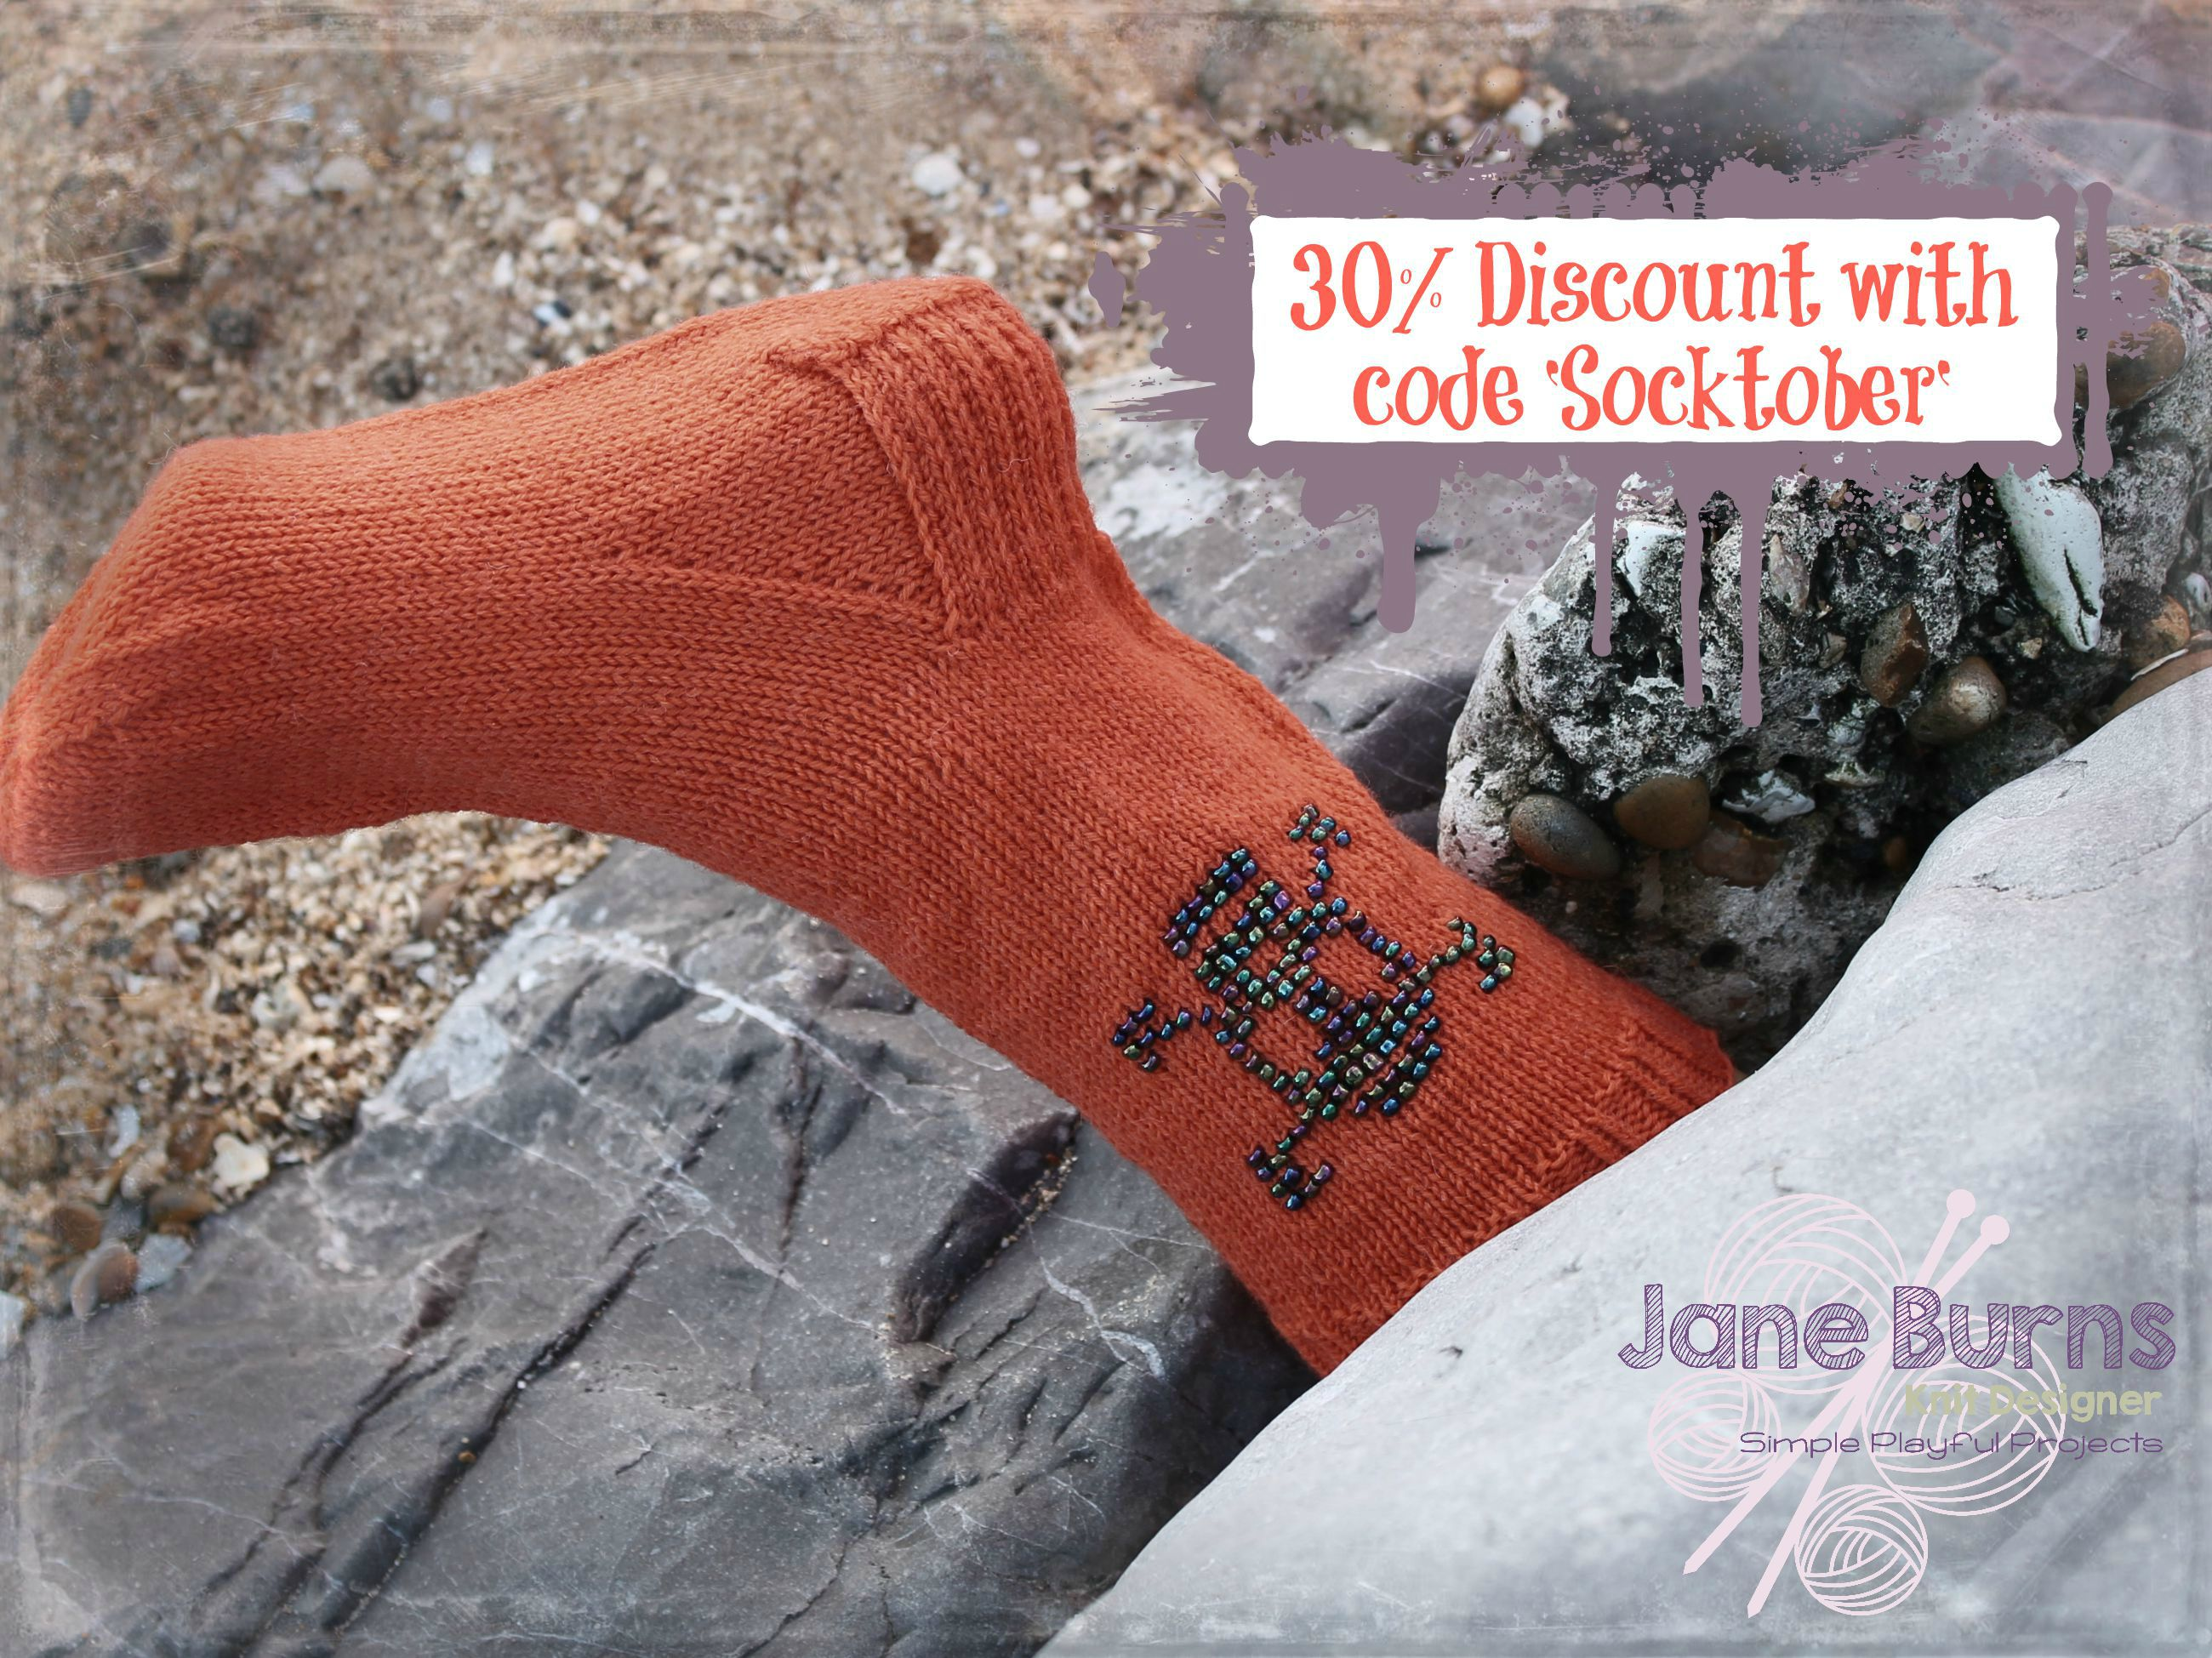 socktober promo jane burns discount